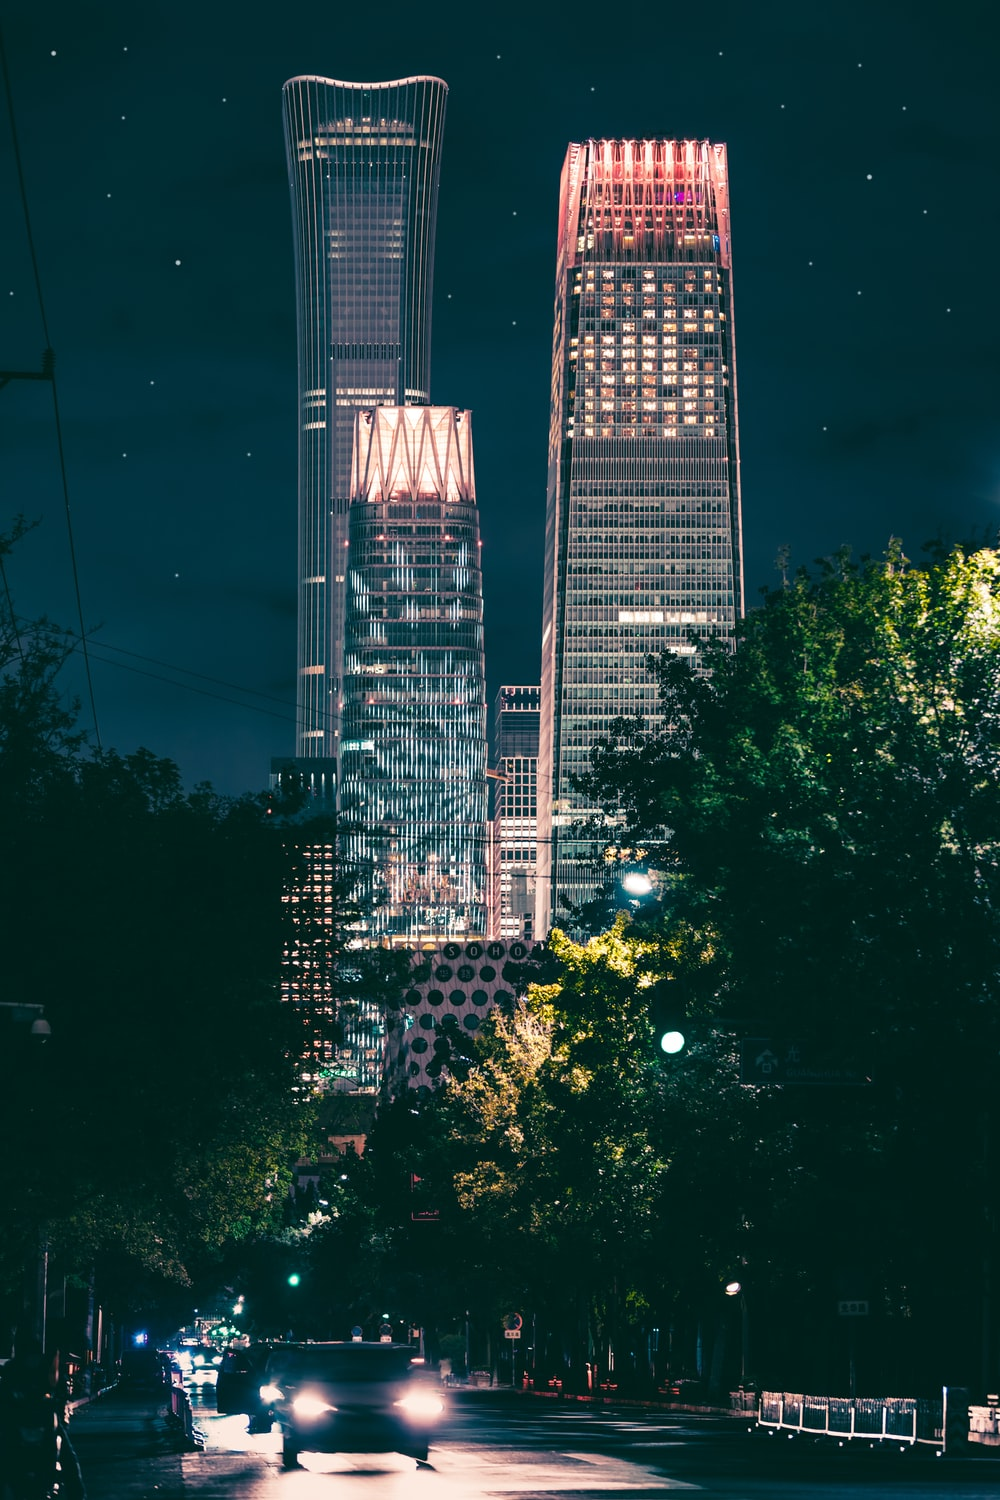 high-rise buildings with turned-on lights at nighttime